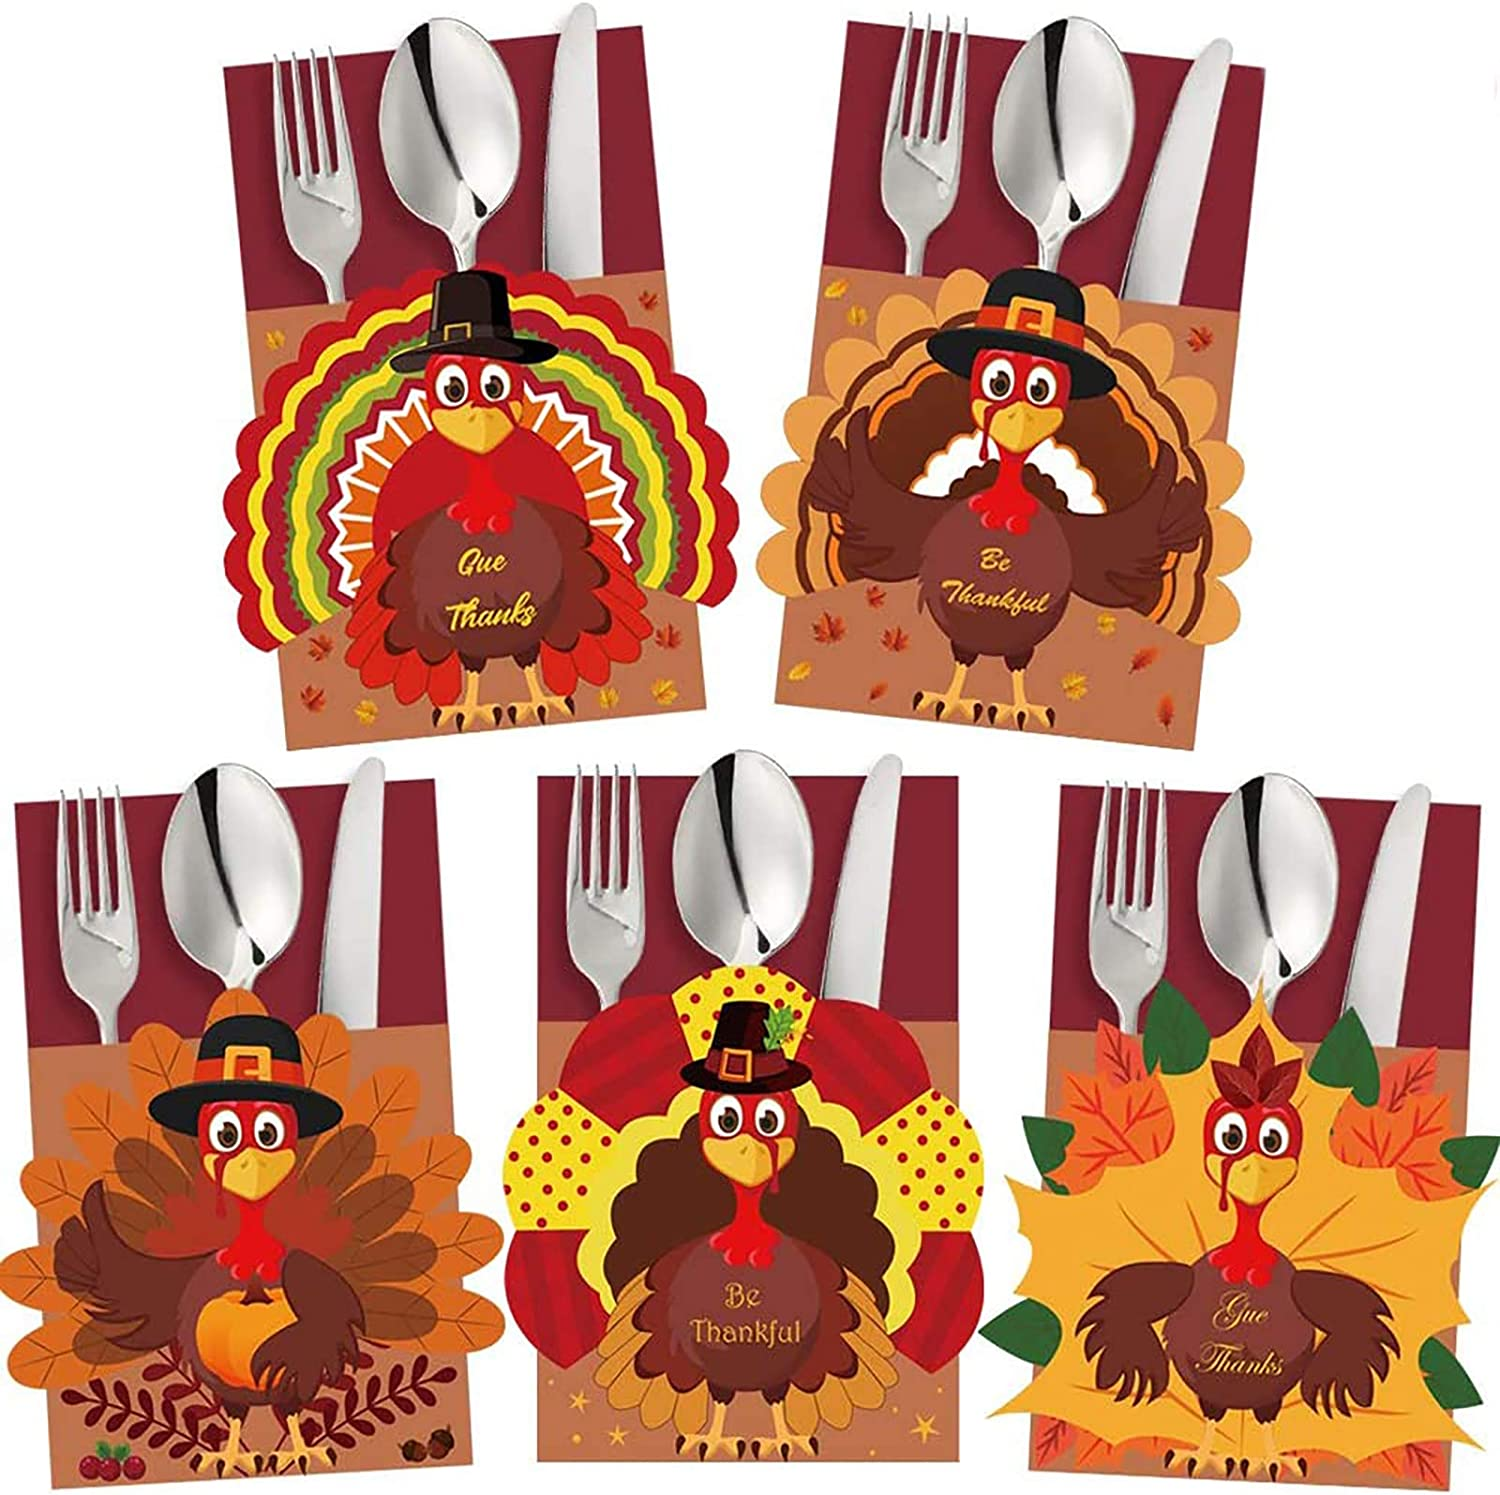 FUNARTY 20pcs Thanksgiving Cutlery Holder Set for Thanksgiving Turkey Utensil Decor, Autumn Fall Harvest Party Favor Supply Table Decoration